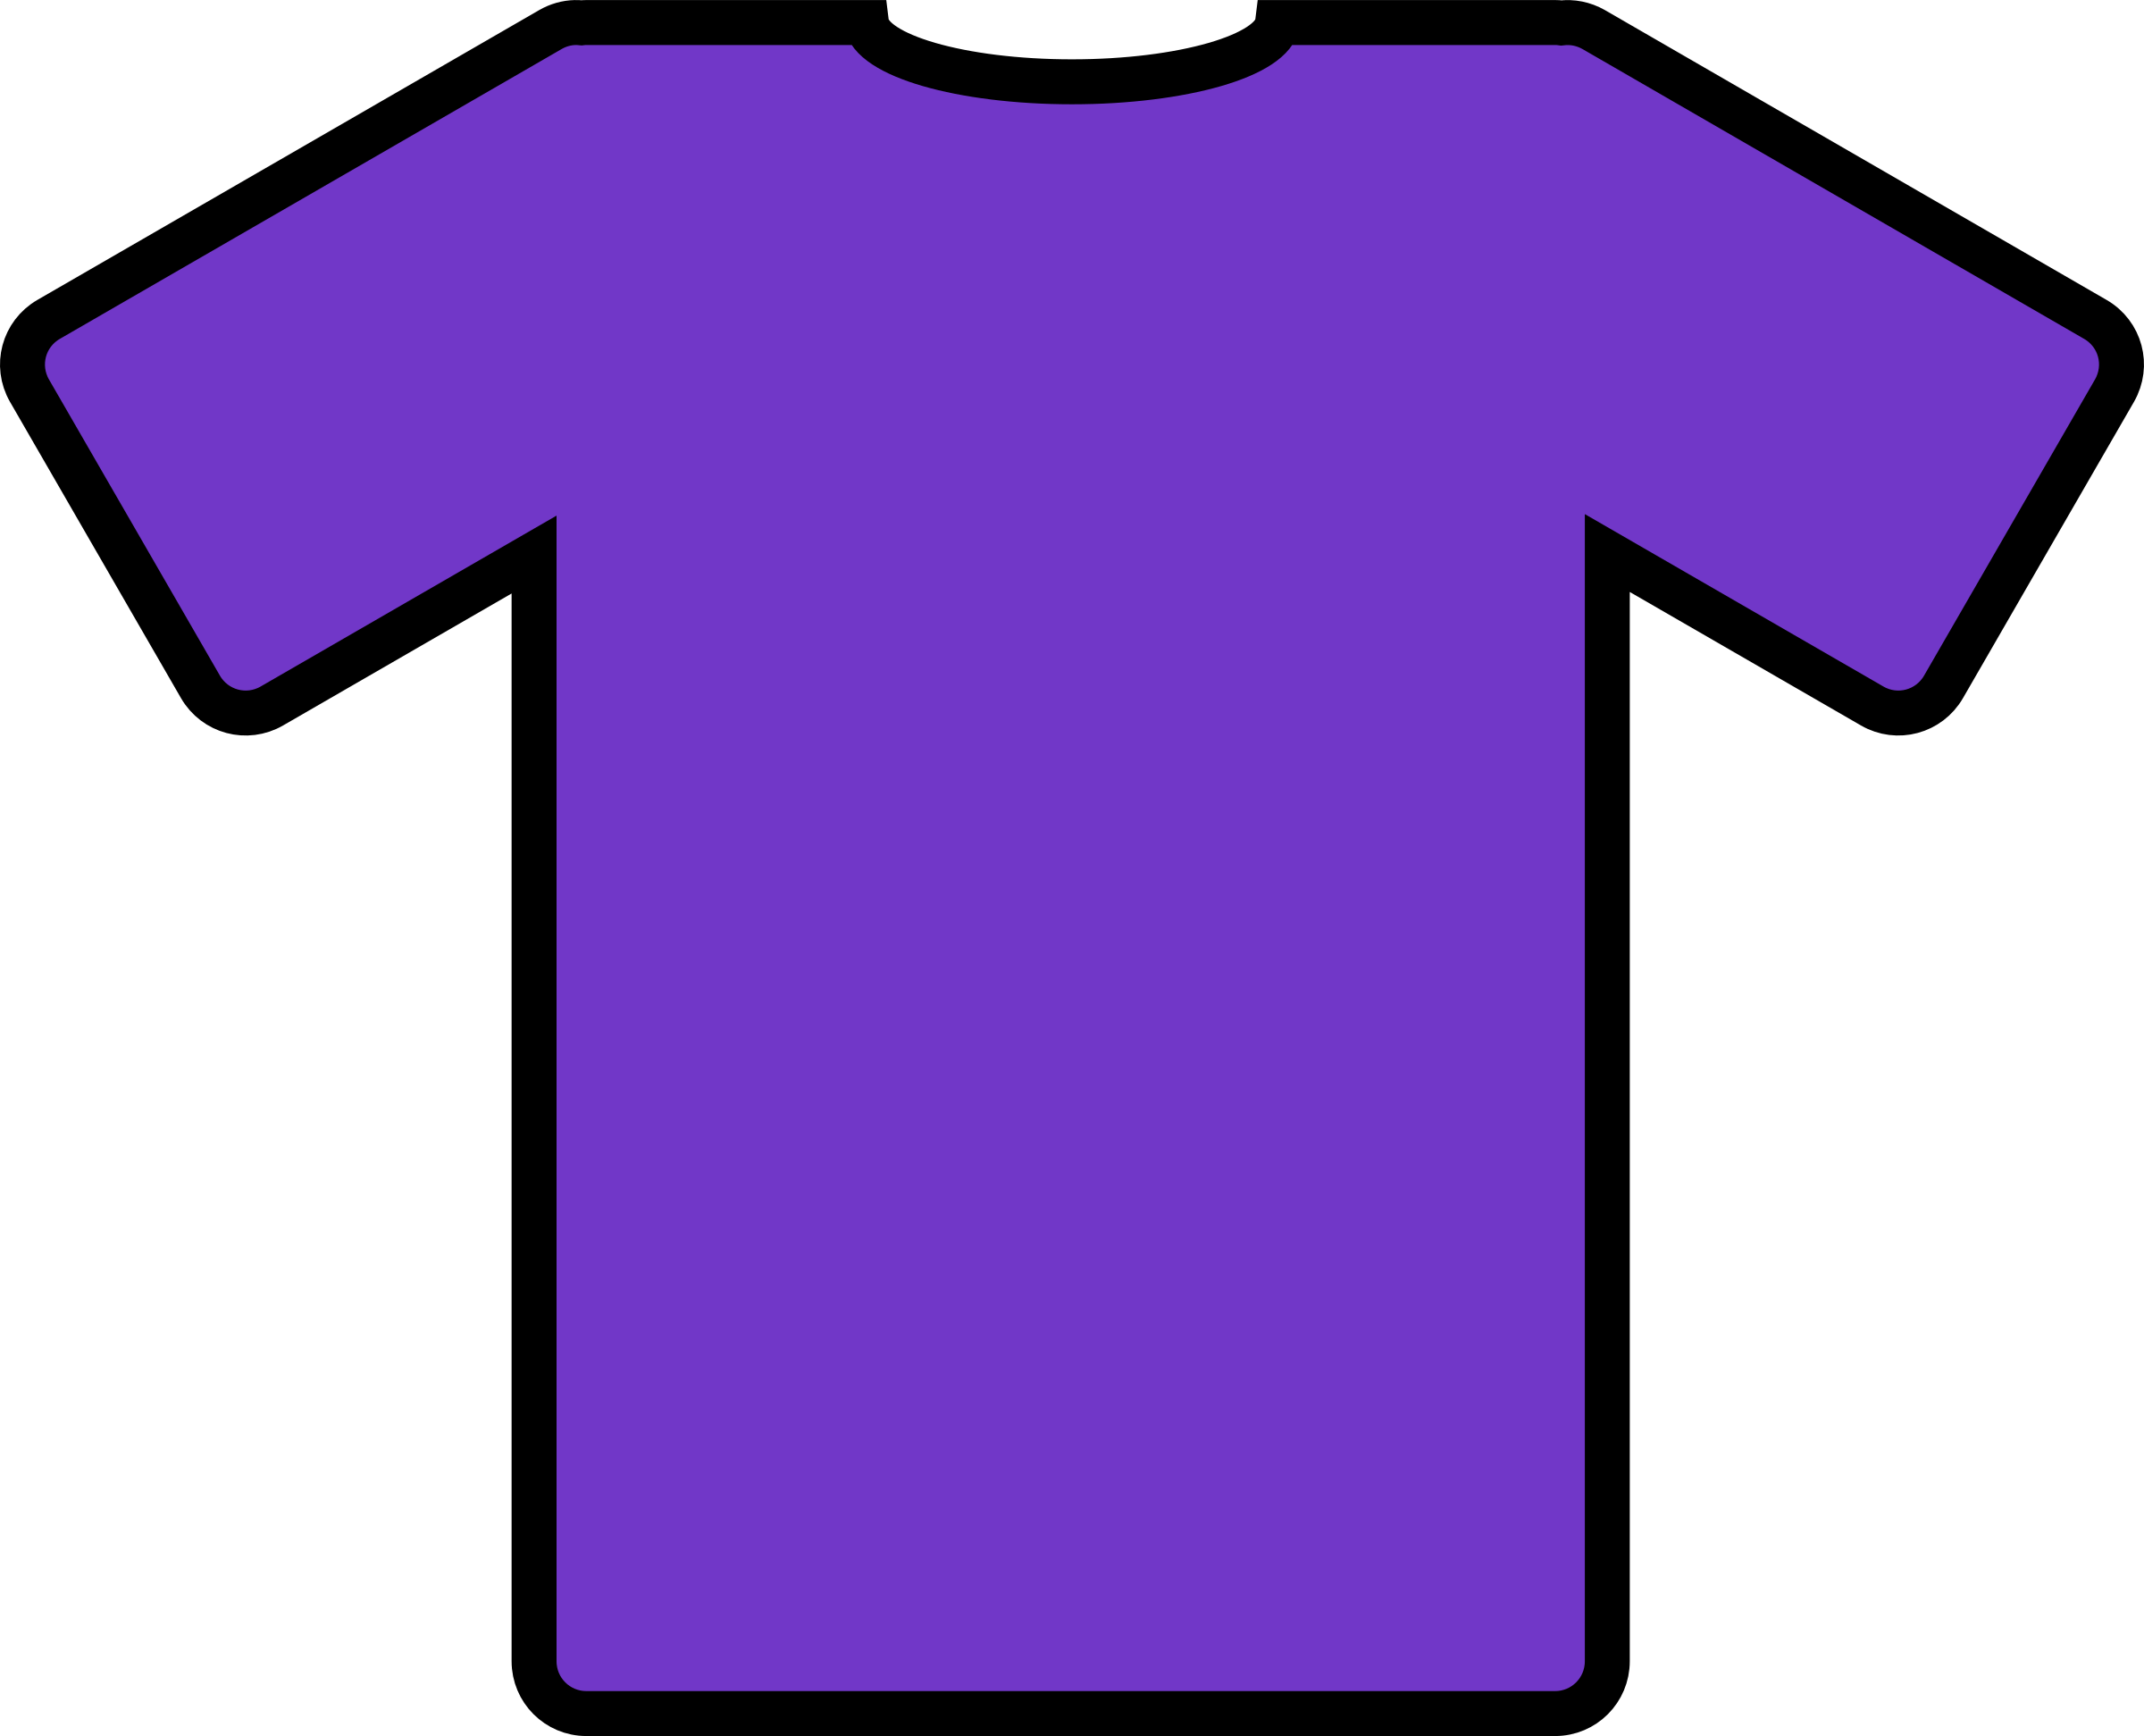 purple t-shirt by ryanlerch